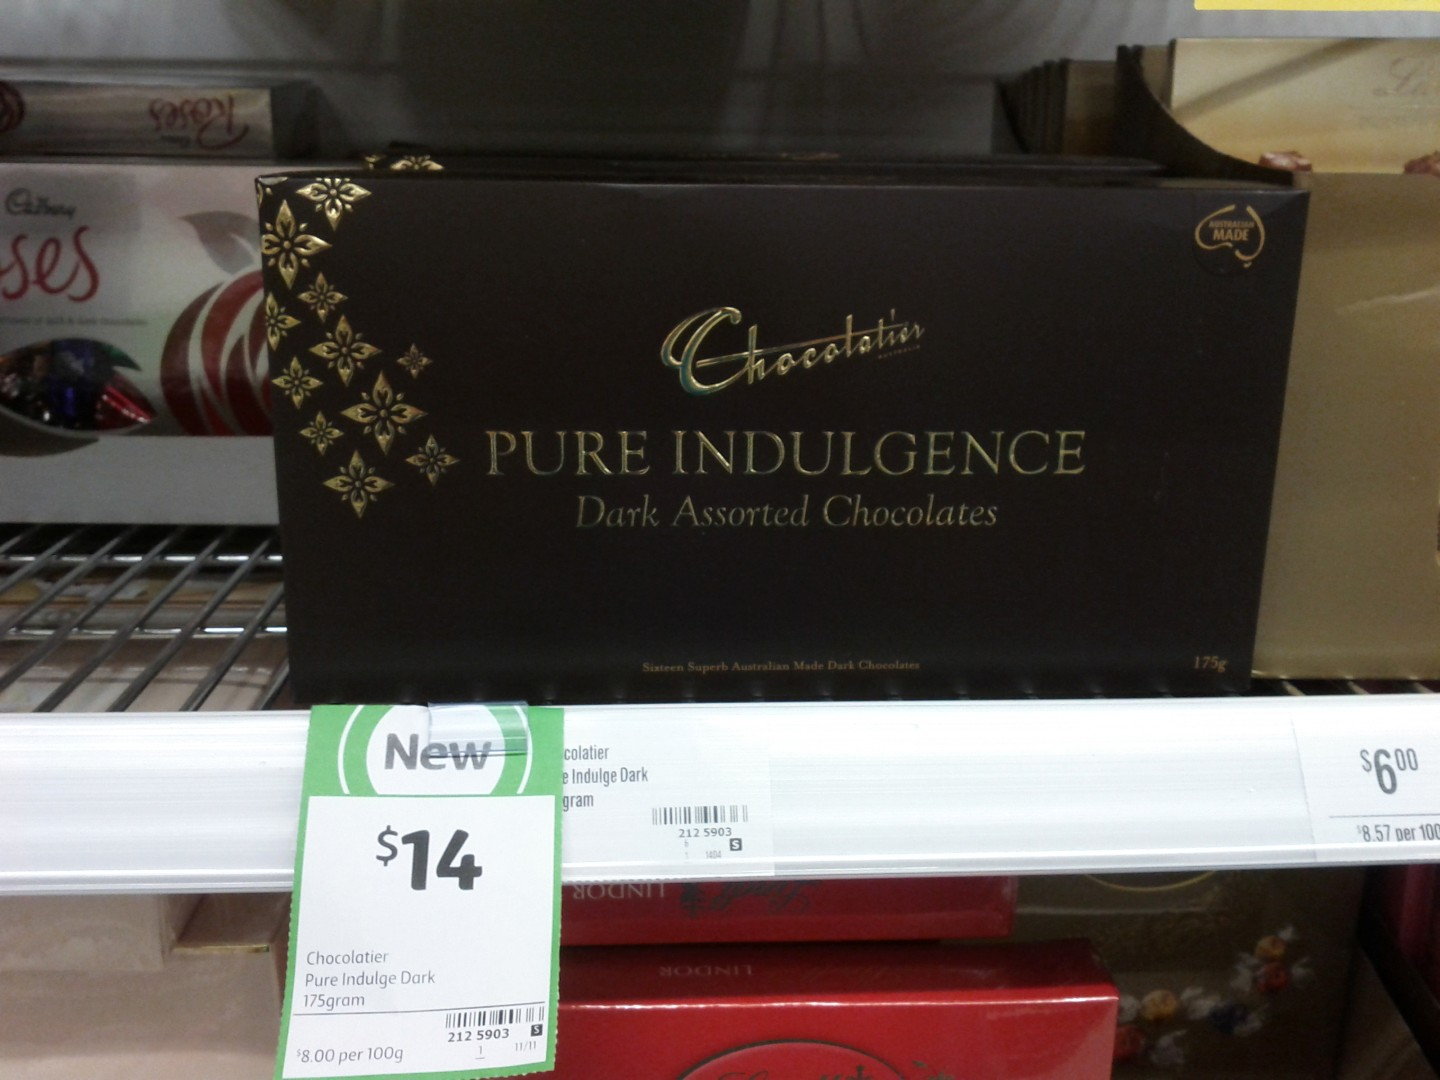 Chocolatier 175g Pure Indulgence Dark Assorted Chocolates